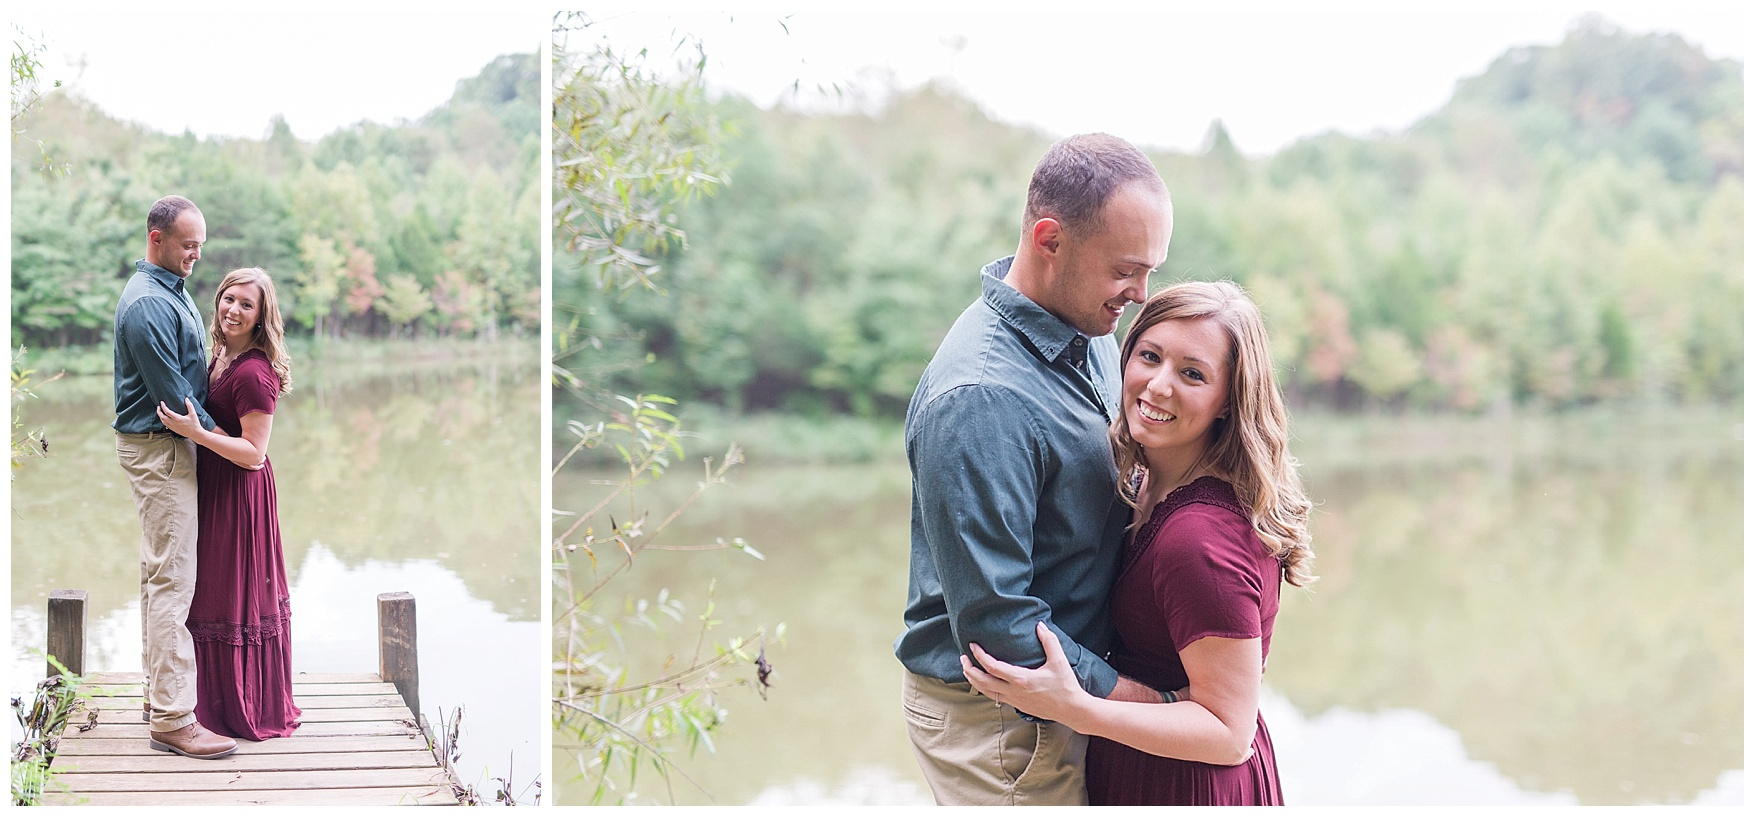 Lynchburg Wedding and Engagement Photographer || Charlottesville and Afton Wedding Photographer || www.ashleyeiban.com